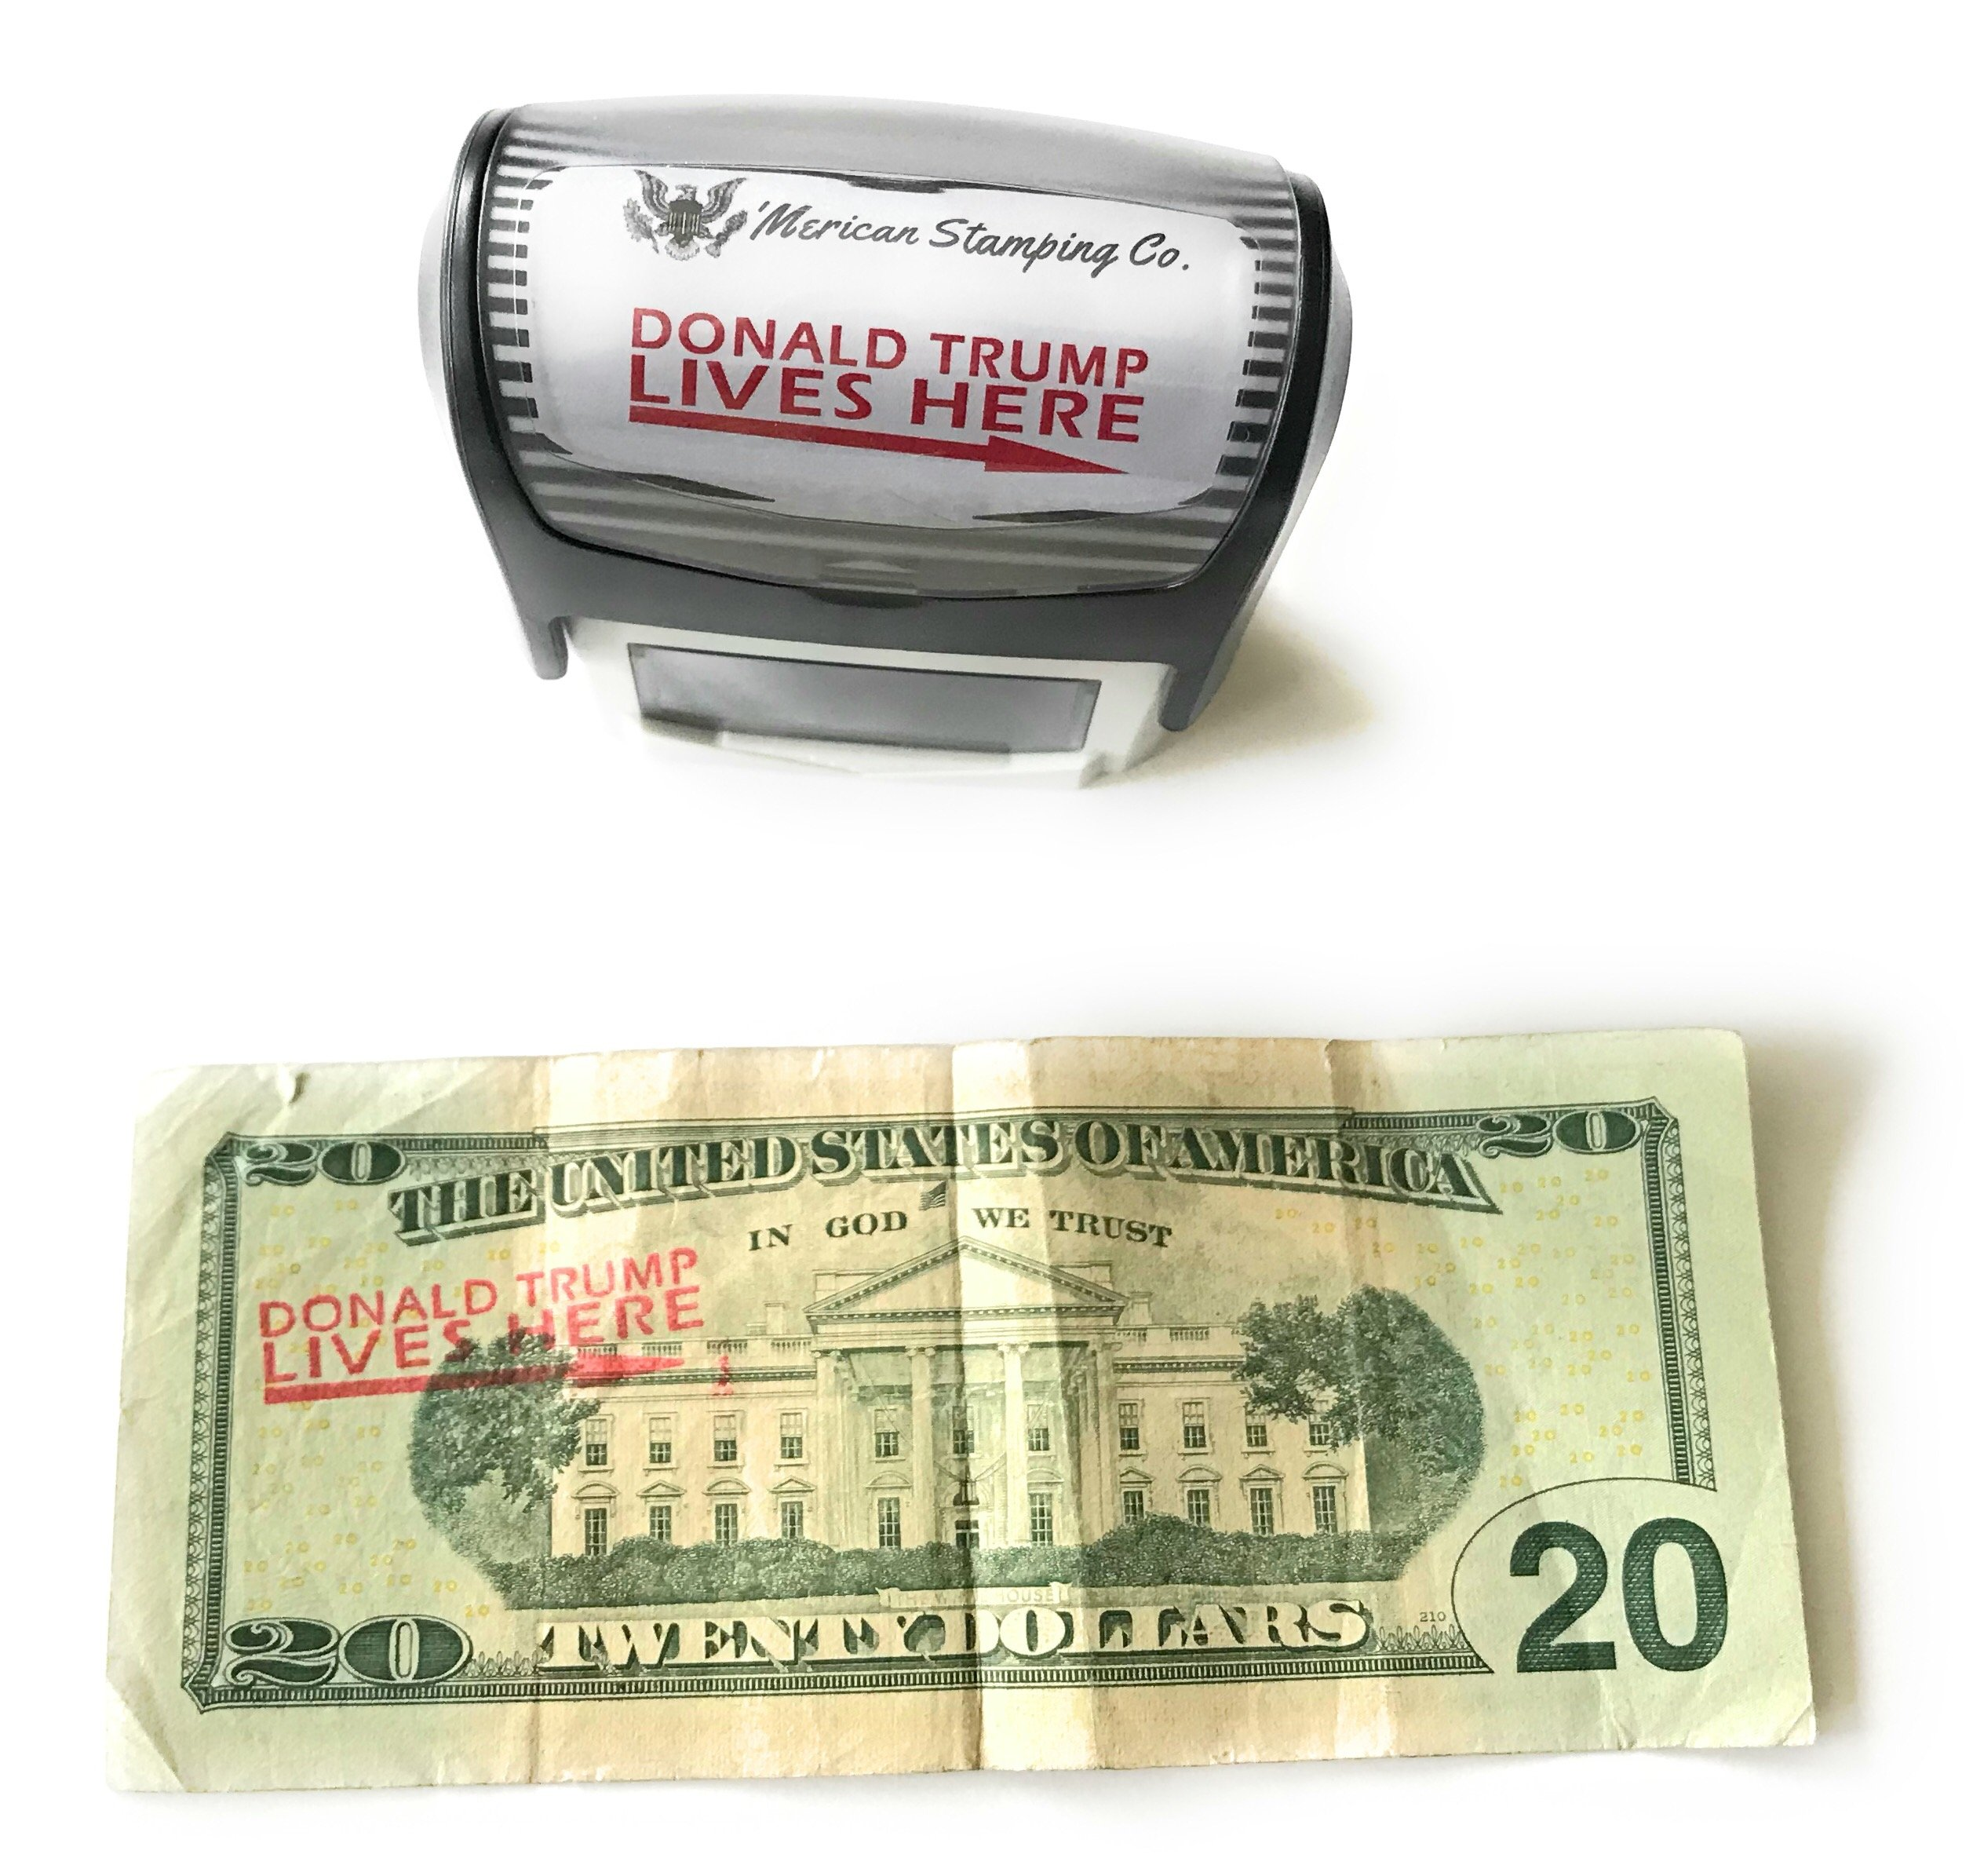 Donald Trump Lives Here Stamp, Self Inking Rubber Stamp, Red Ink